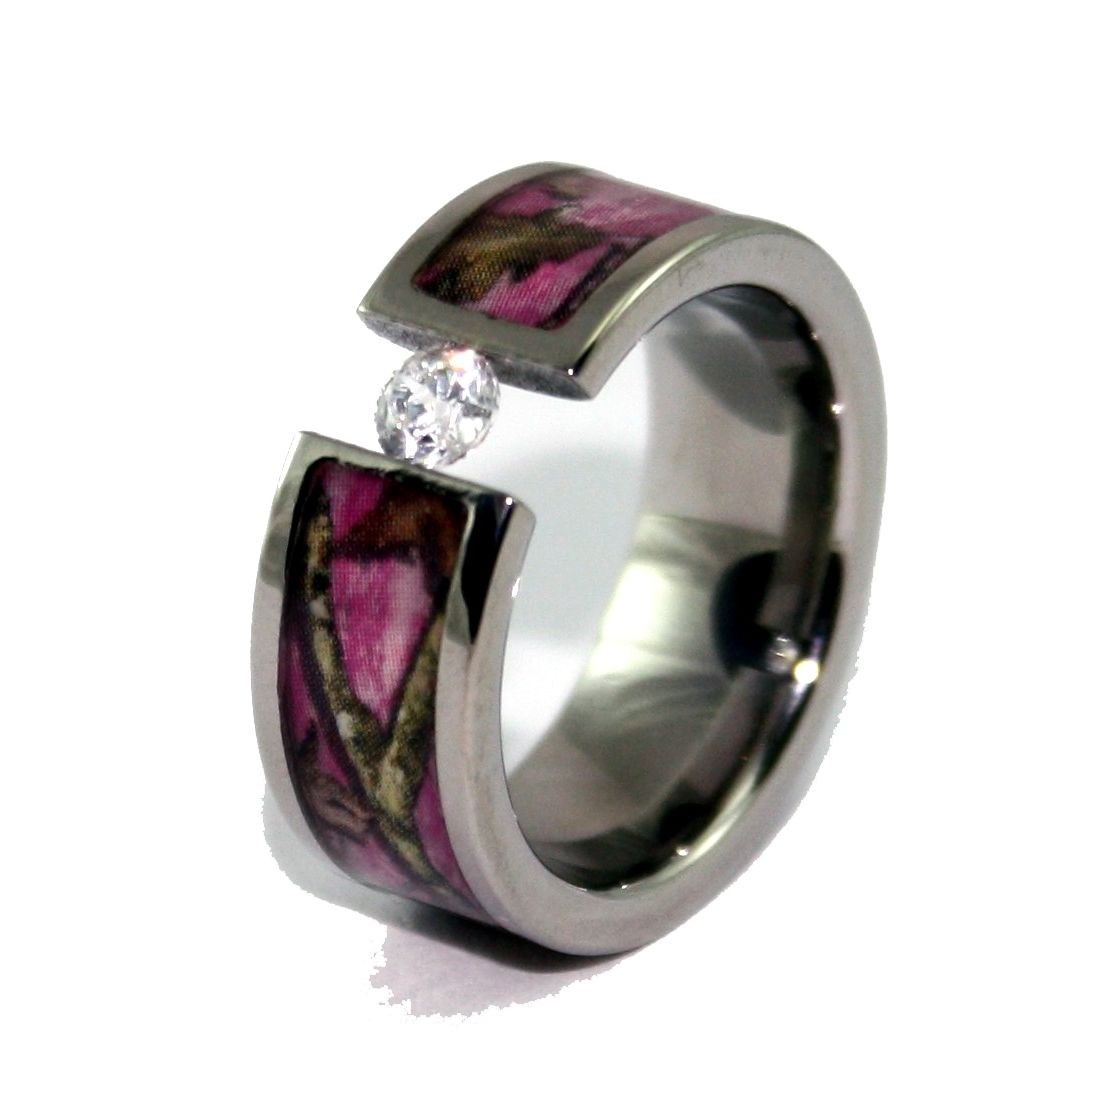 diamond pink camo wedding rings for her - Pink Camo Wedding Rings For Her